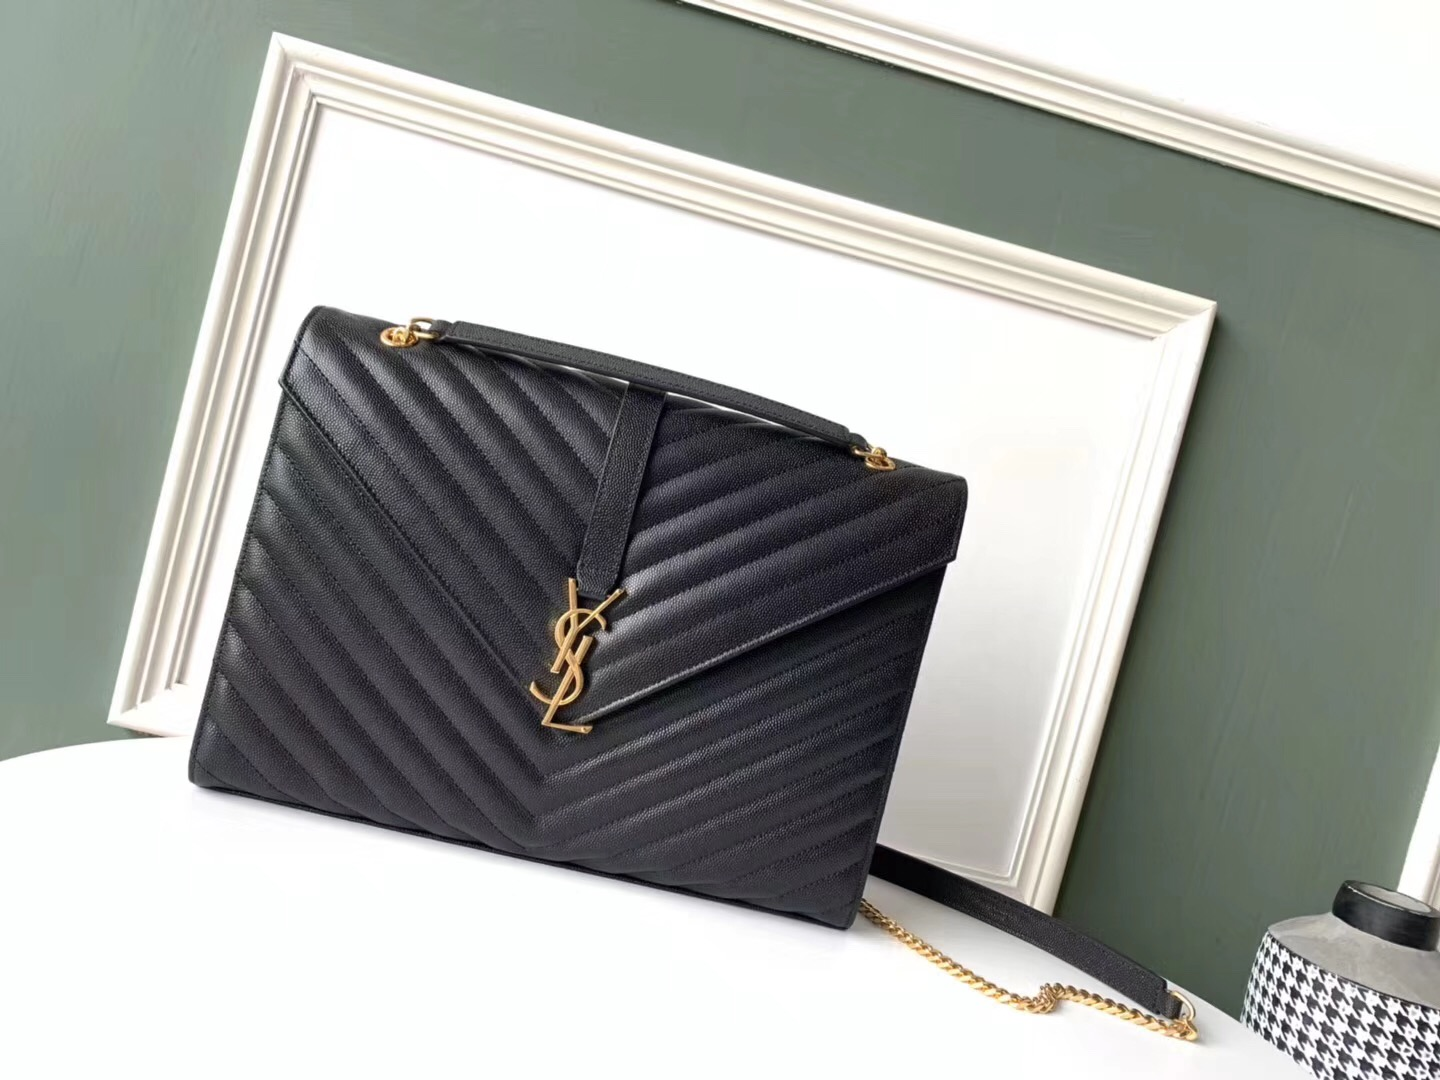 SAINT LAURENT leather shoulder bag 392745 black&gold-toned hardware